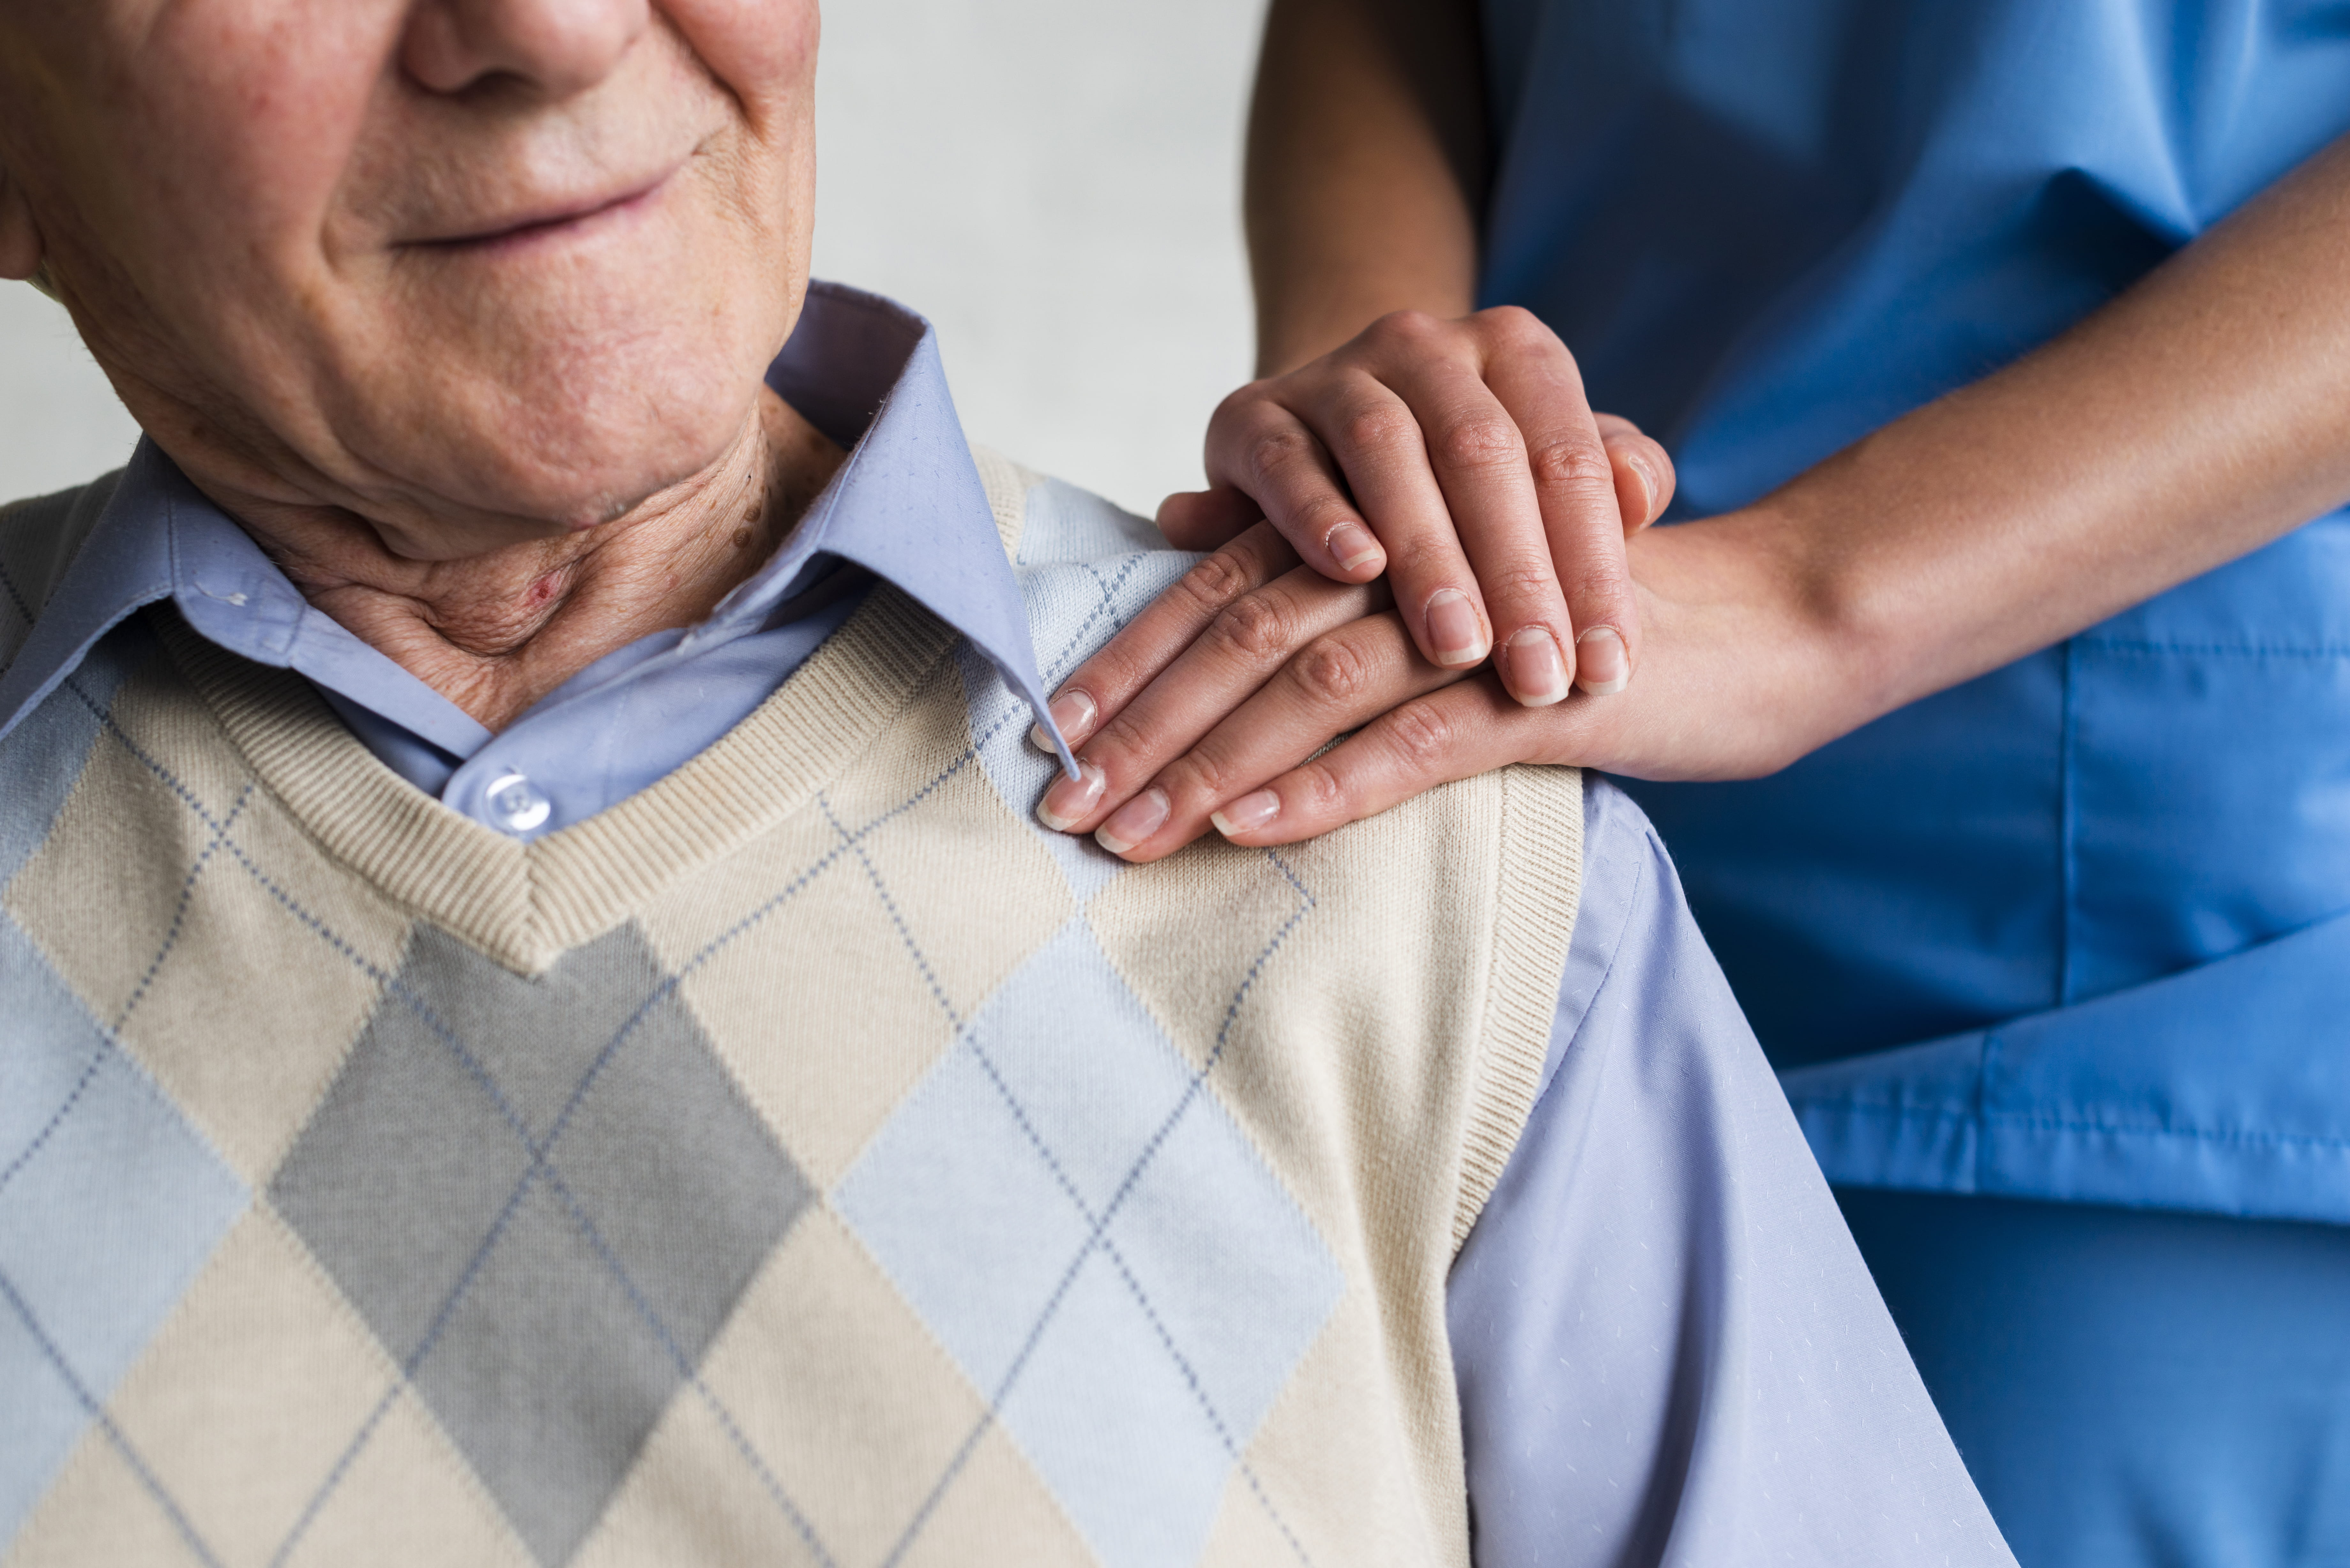 Carer placing supportive hand on the shoulder of an elderly man